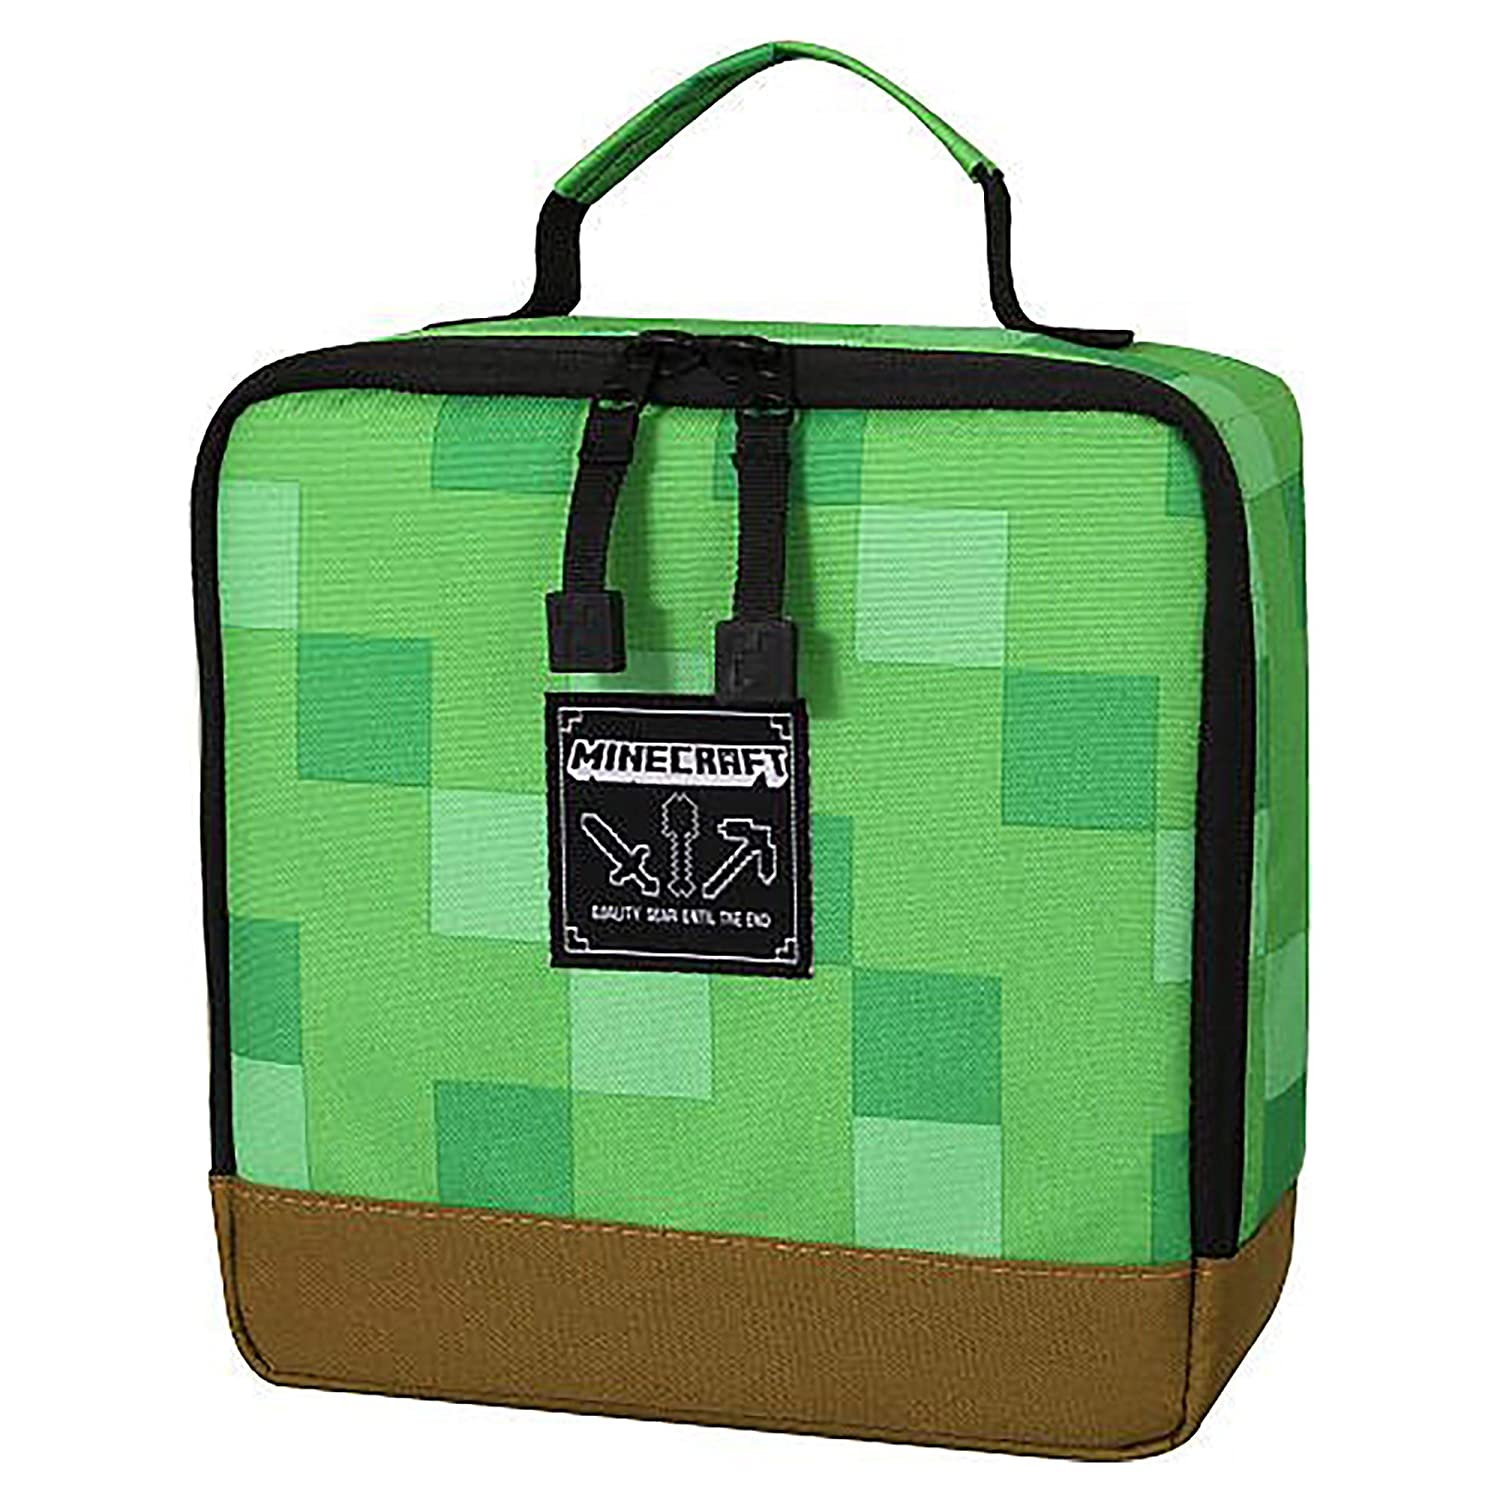 JINX Minecraft Creeper Block Insulated Kids School Lunch Box for Boys, Girls, Kids, Adult